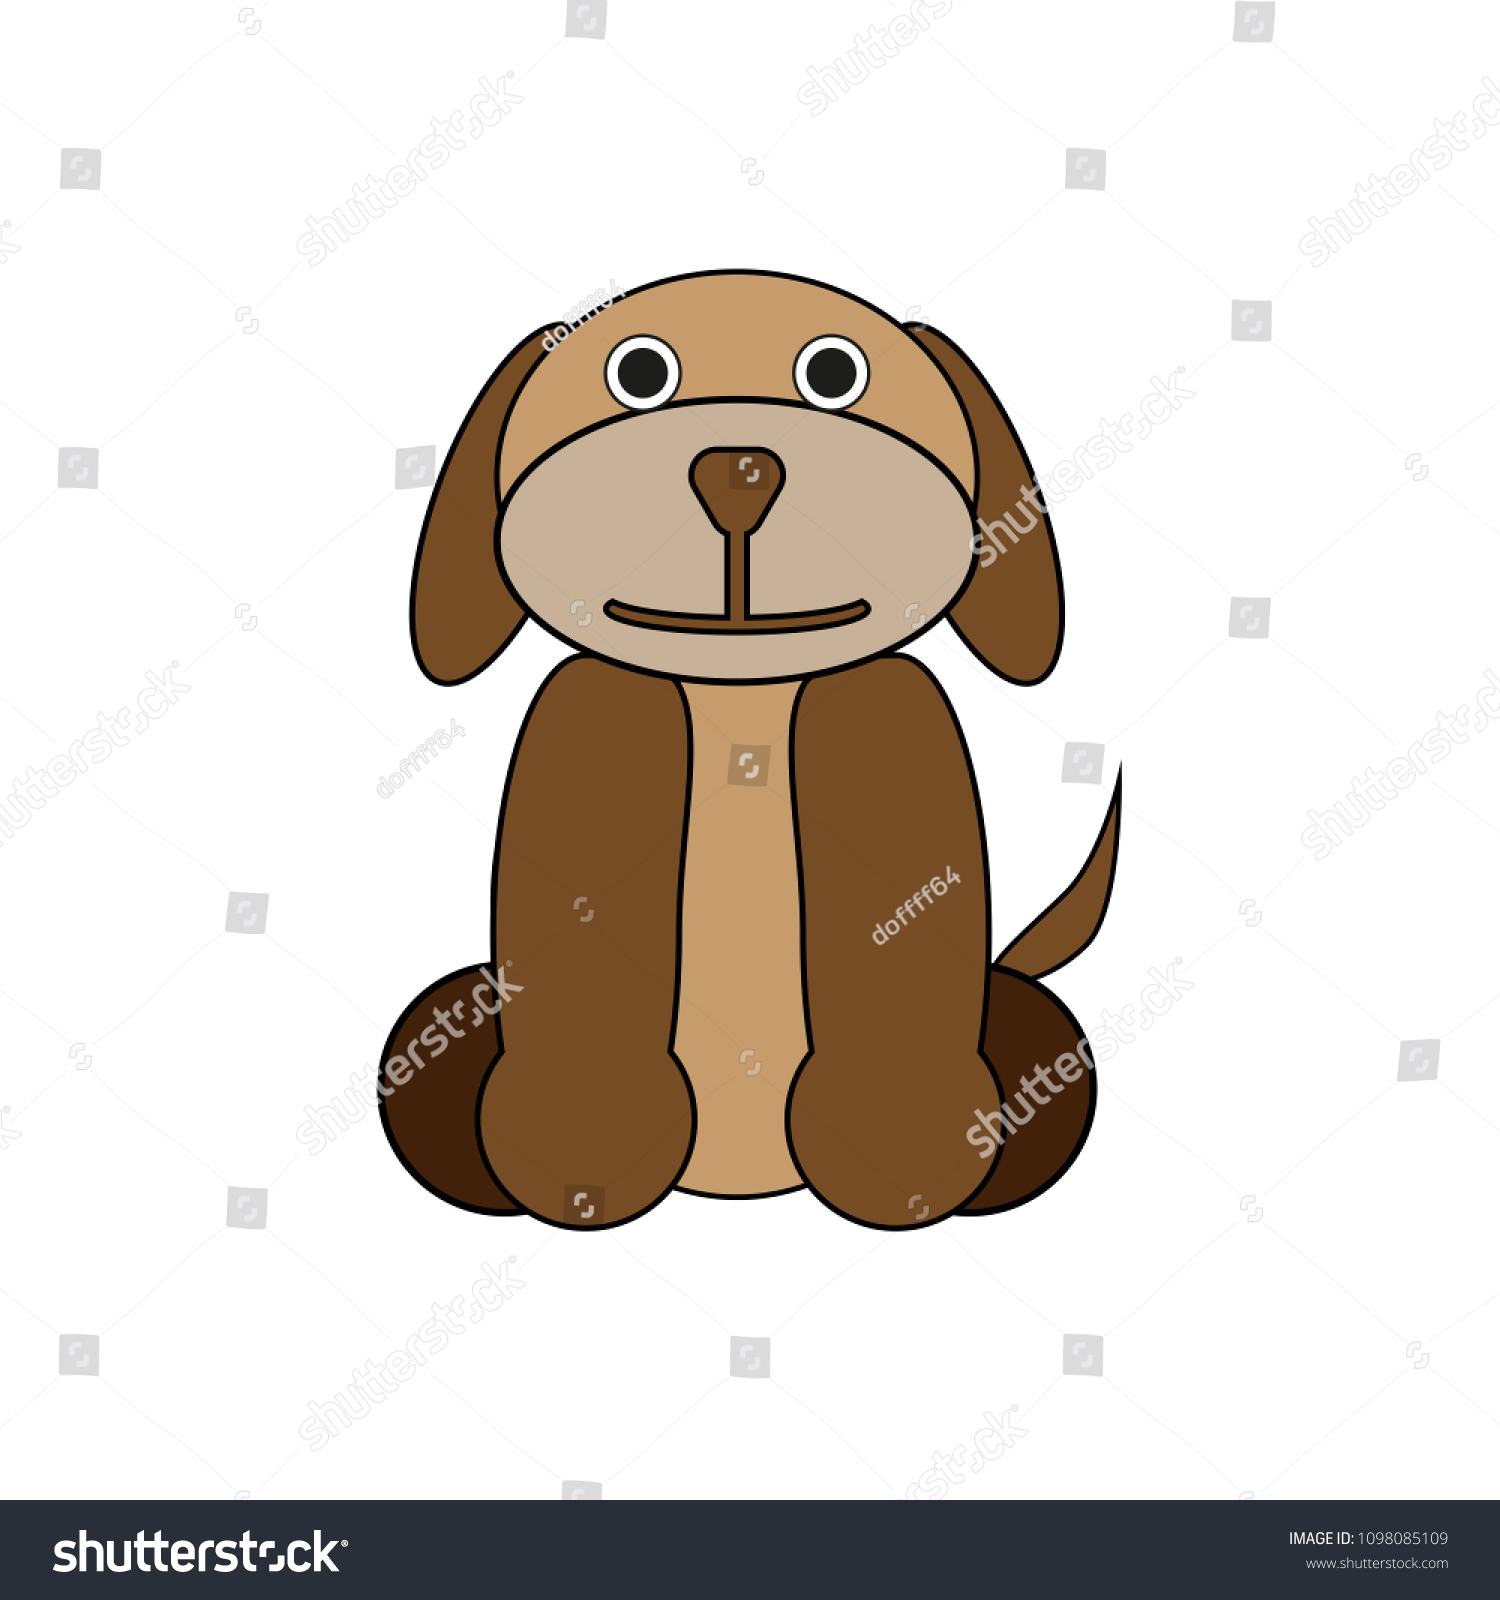 Cute Funny Cartoon Dogs Puppy Pet Stock Vector Royalty Free 1098085109